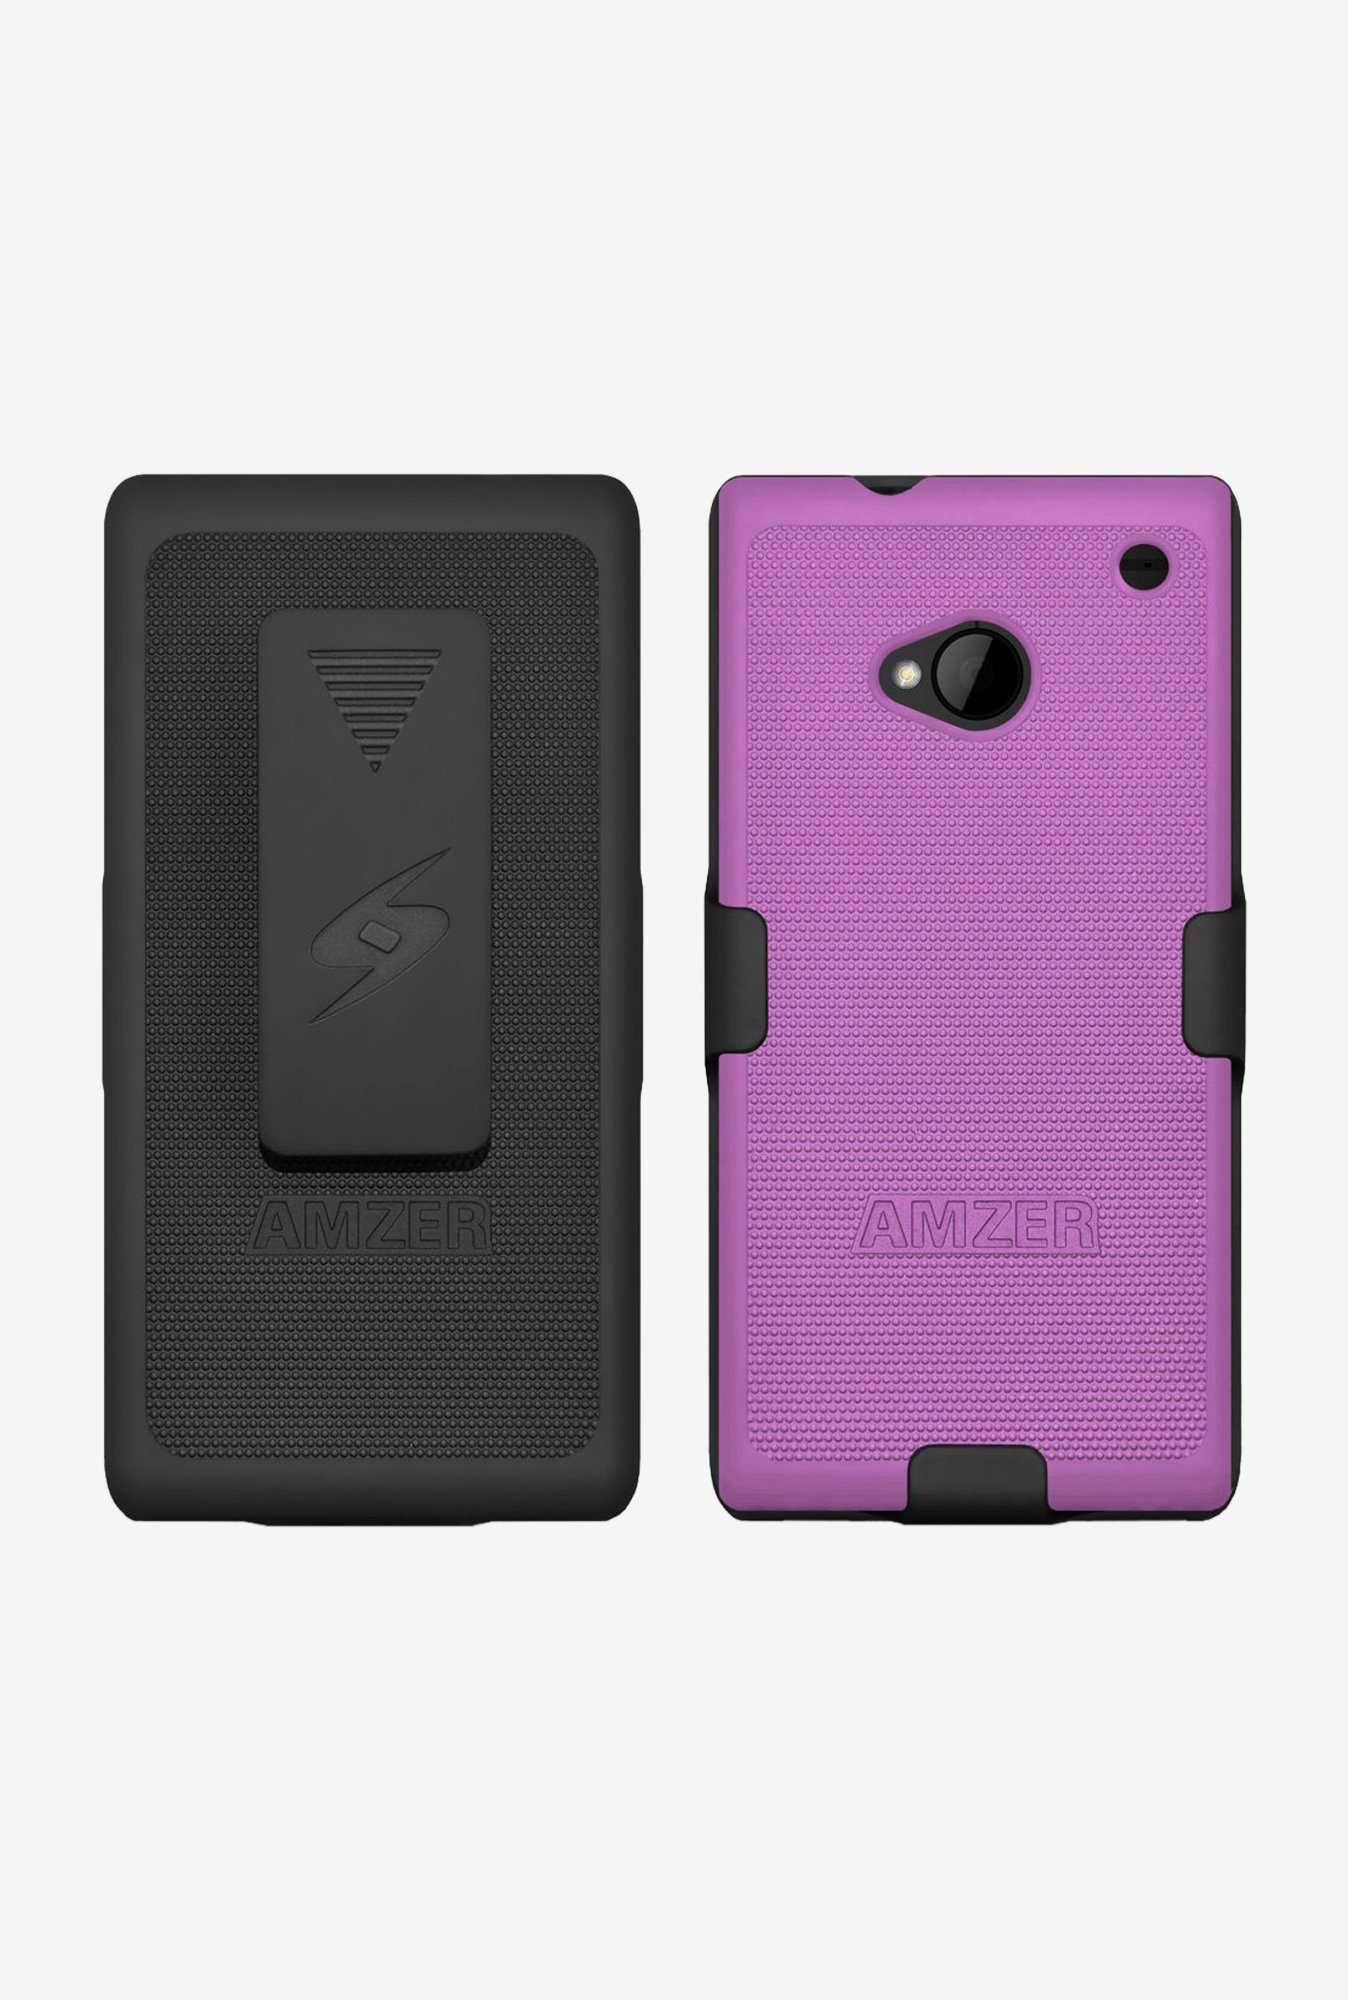 Amzer Shellster Shell Case Black & Purple for HTC One M7